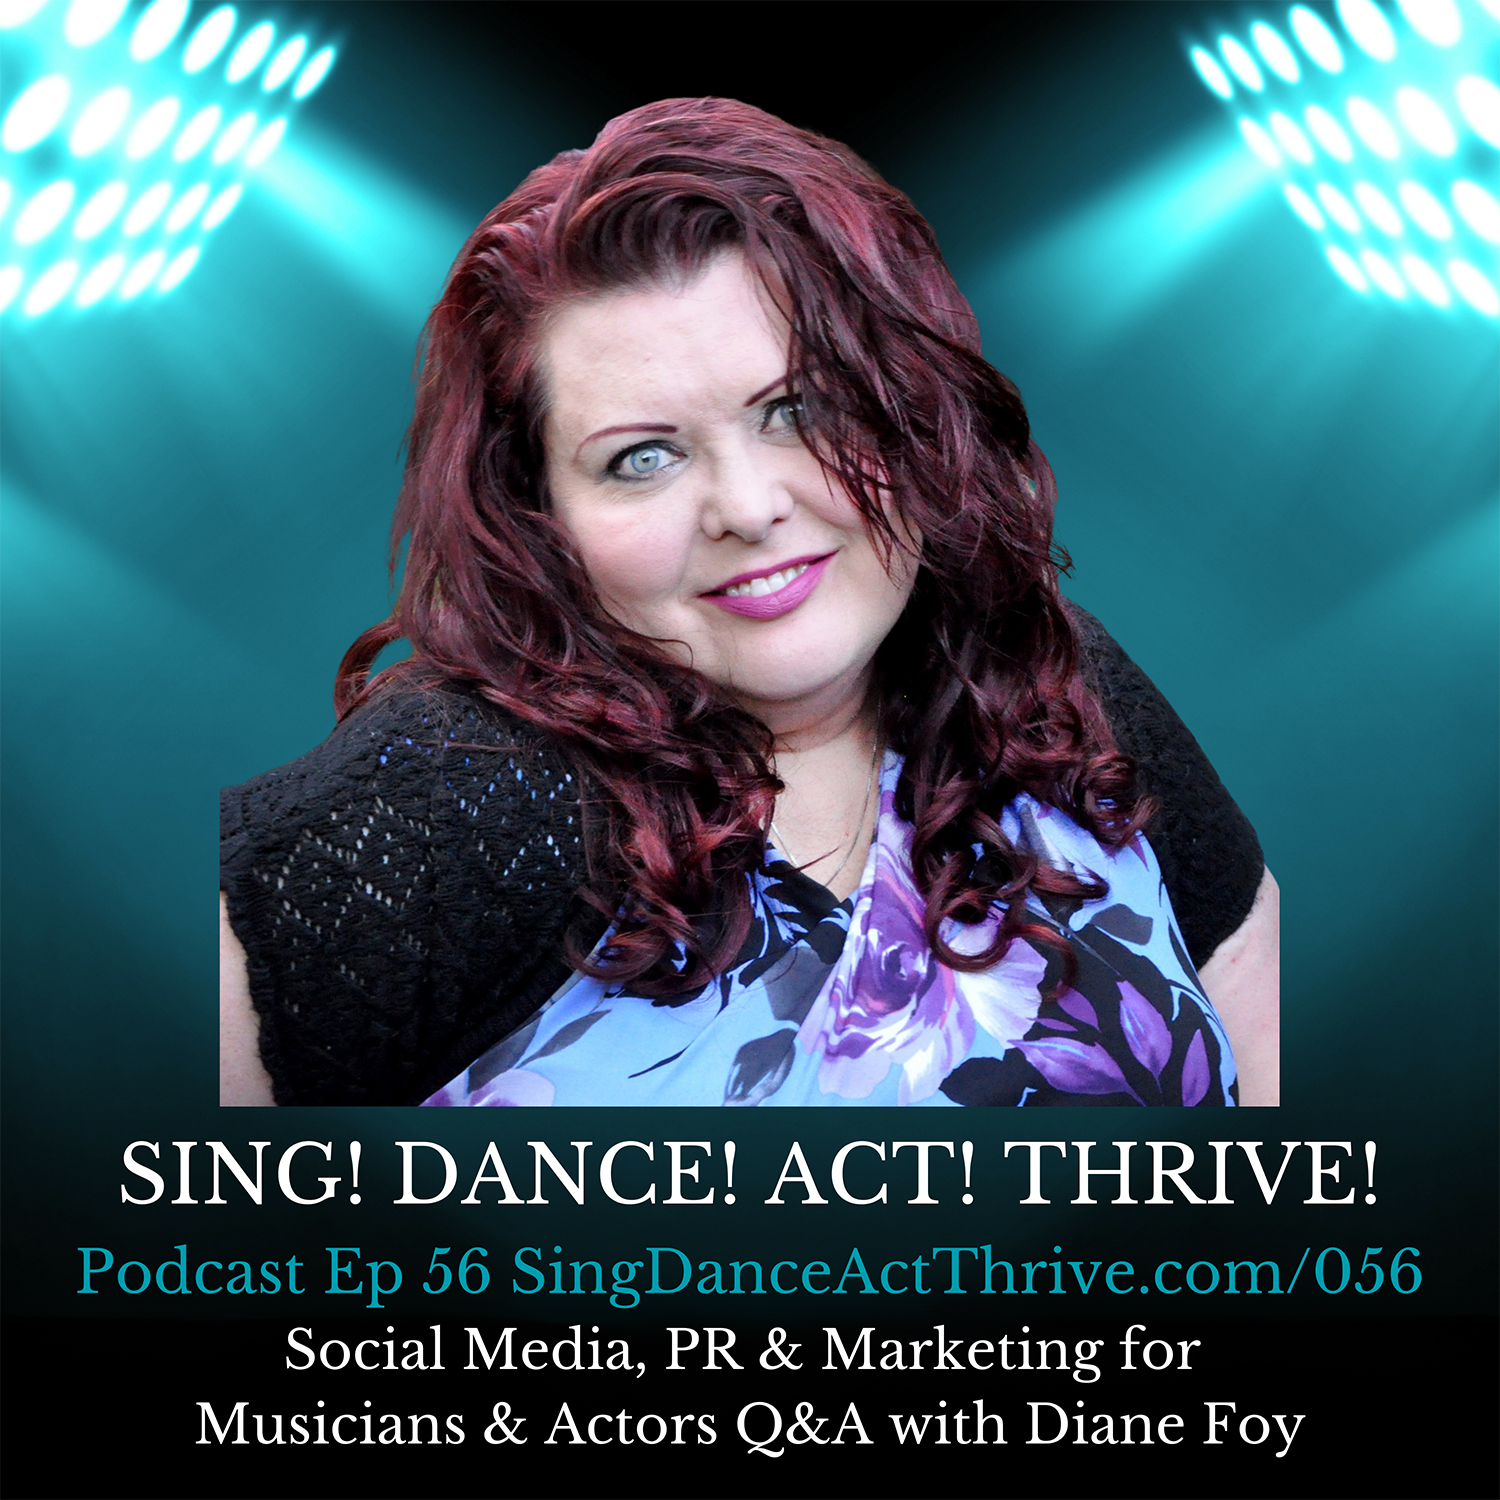 Social Media, PR, Marketing for Musicians & Actors Q&A with Diane Foy